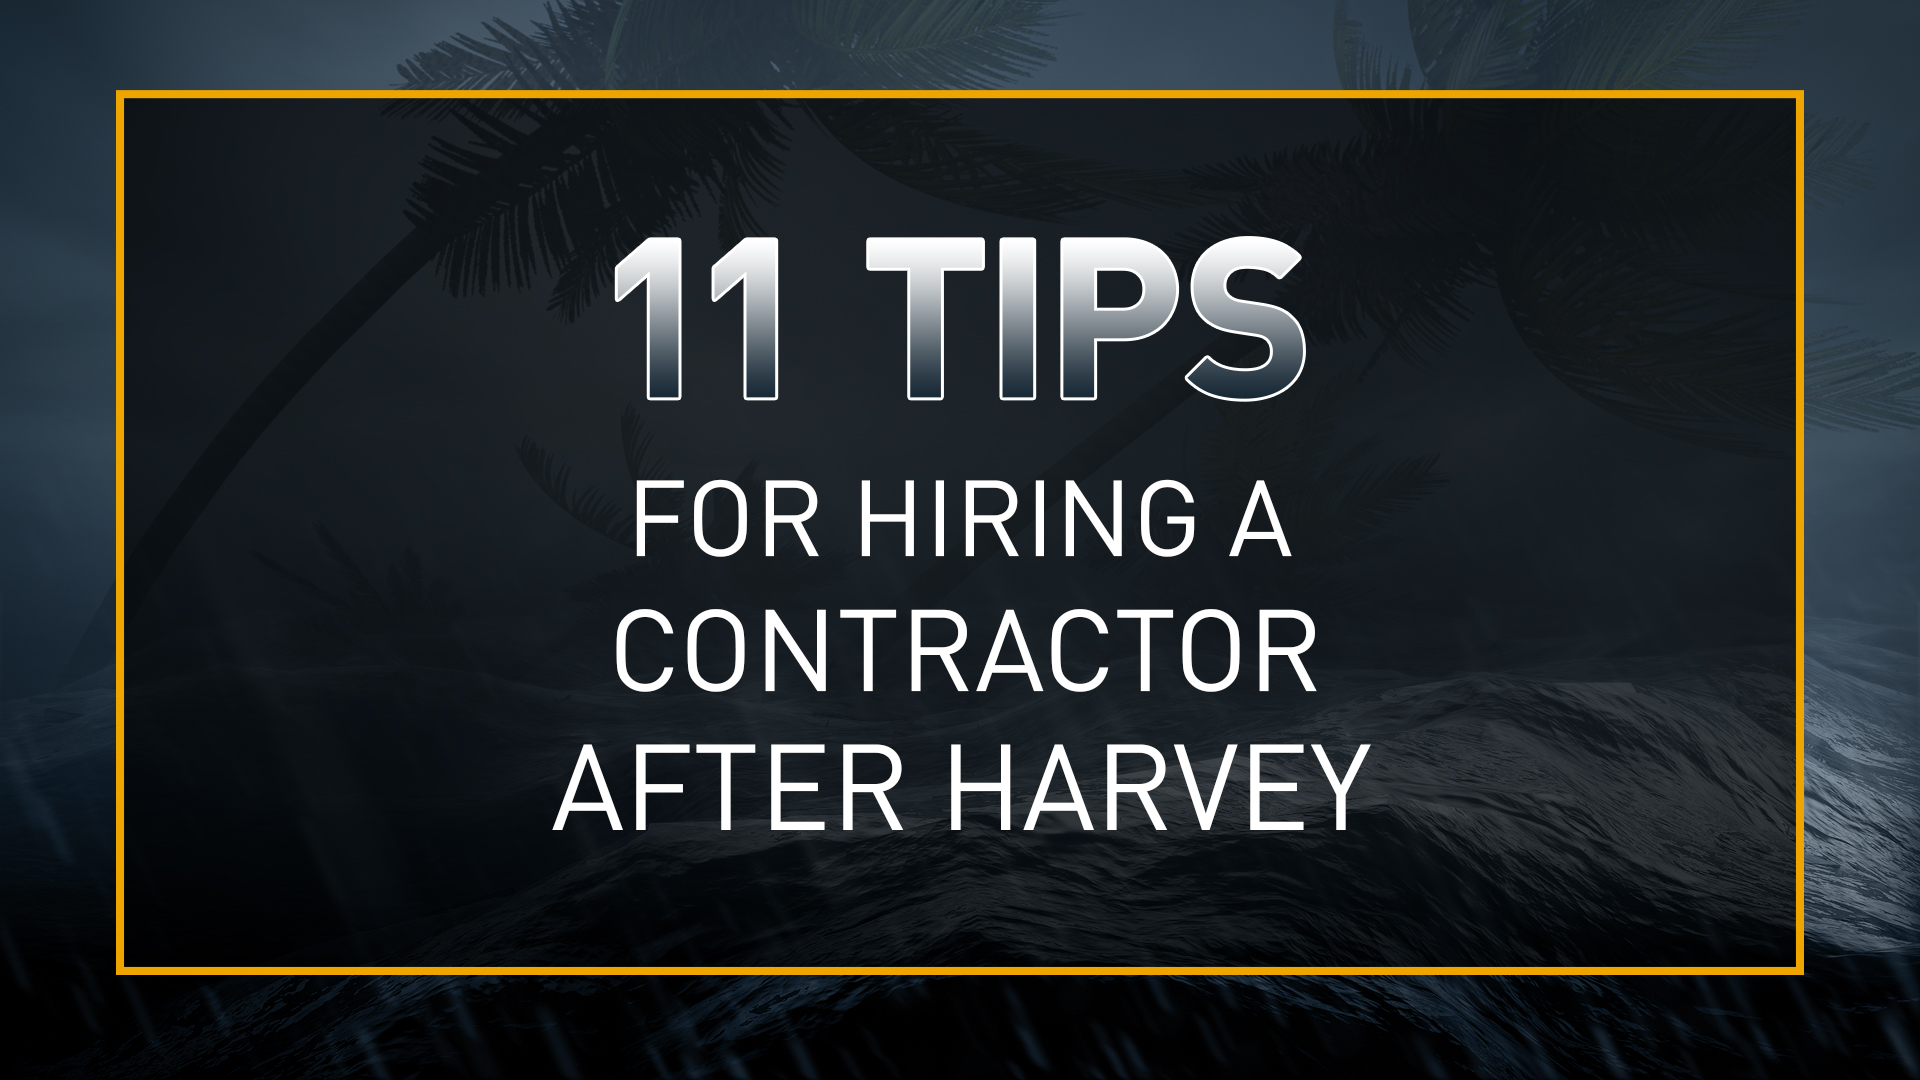 11 tips for hiring a contractor after harvey for Hiring a contractor